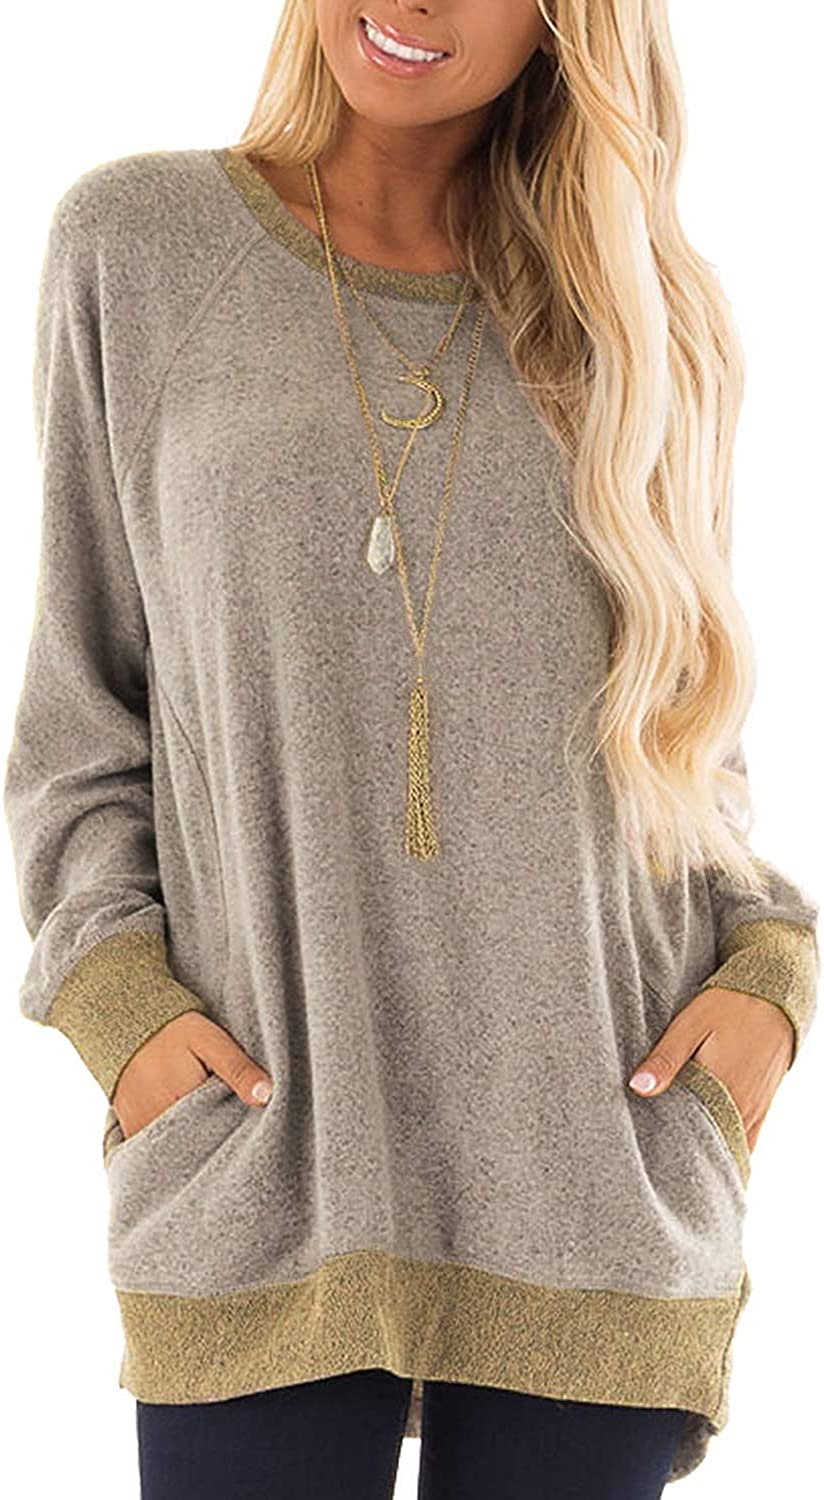 Women's Shirts with Pocket Casual Pullover Sweaters Long Sleeve T Shirts Sweatshirts Tops Blouses